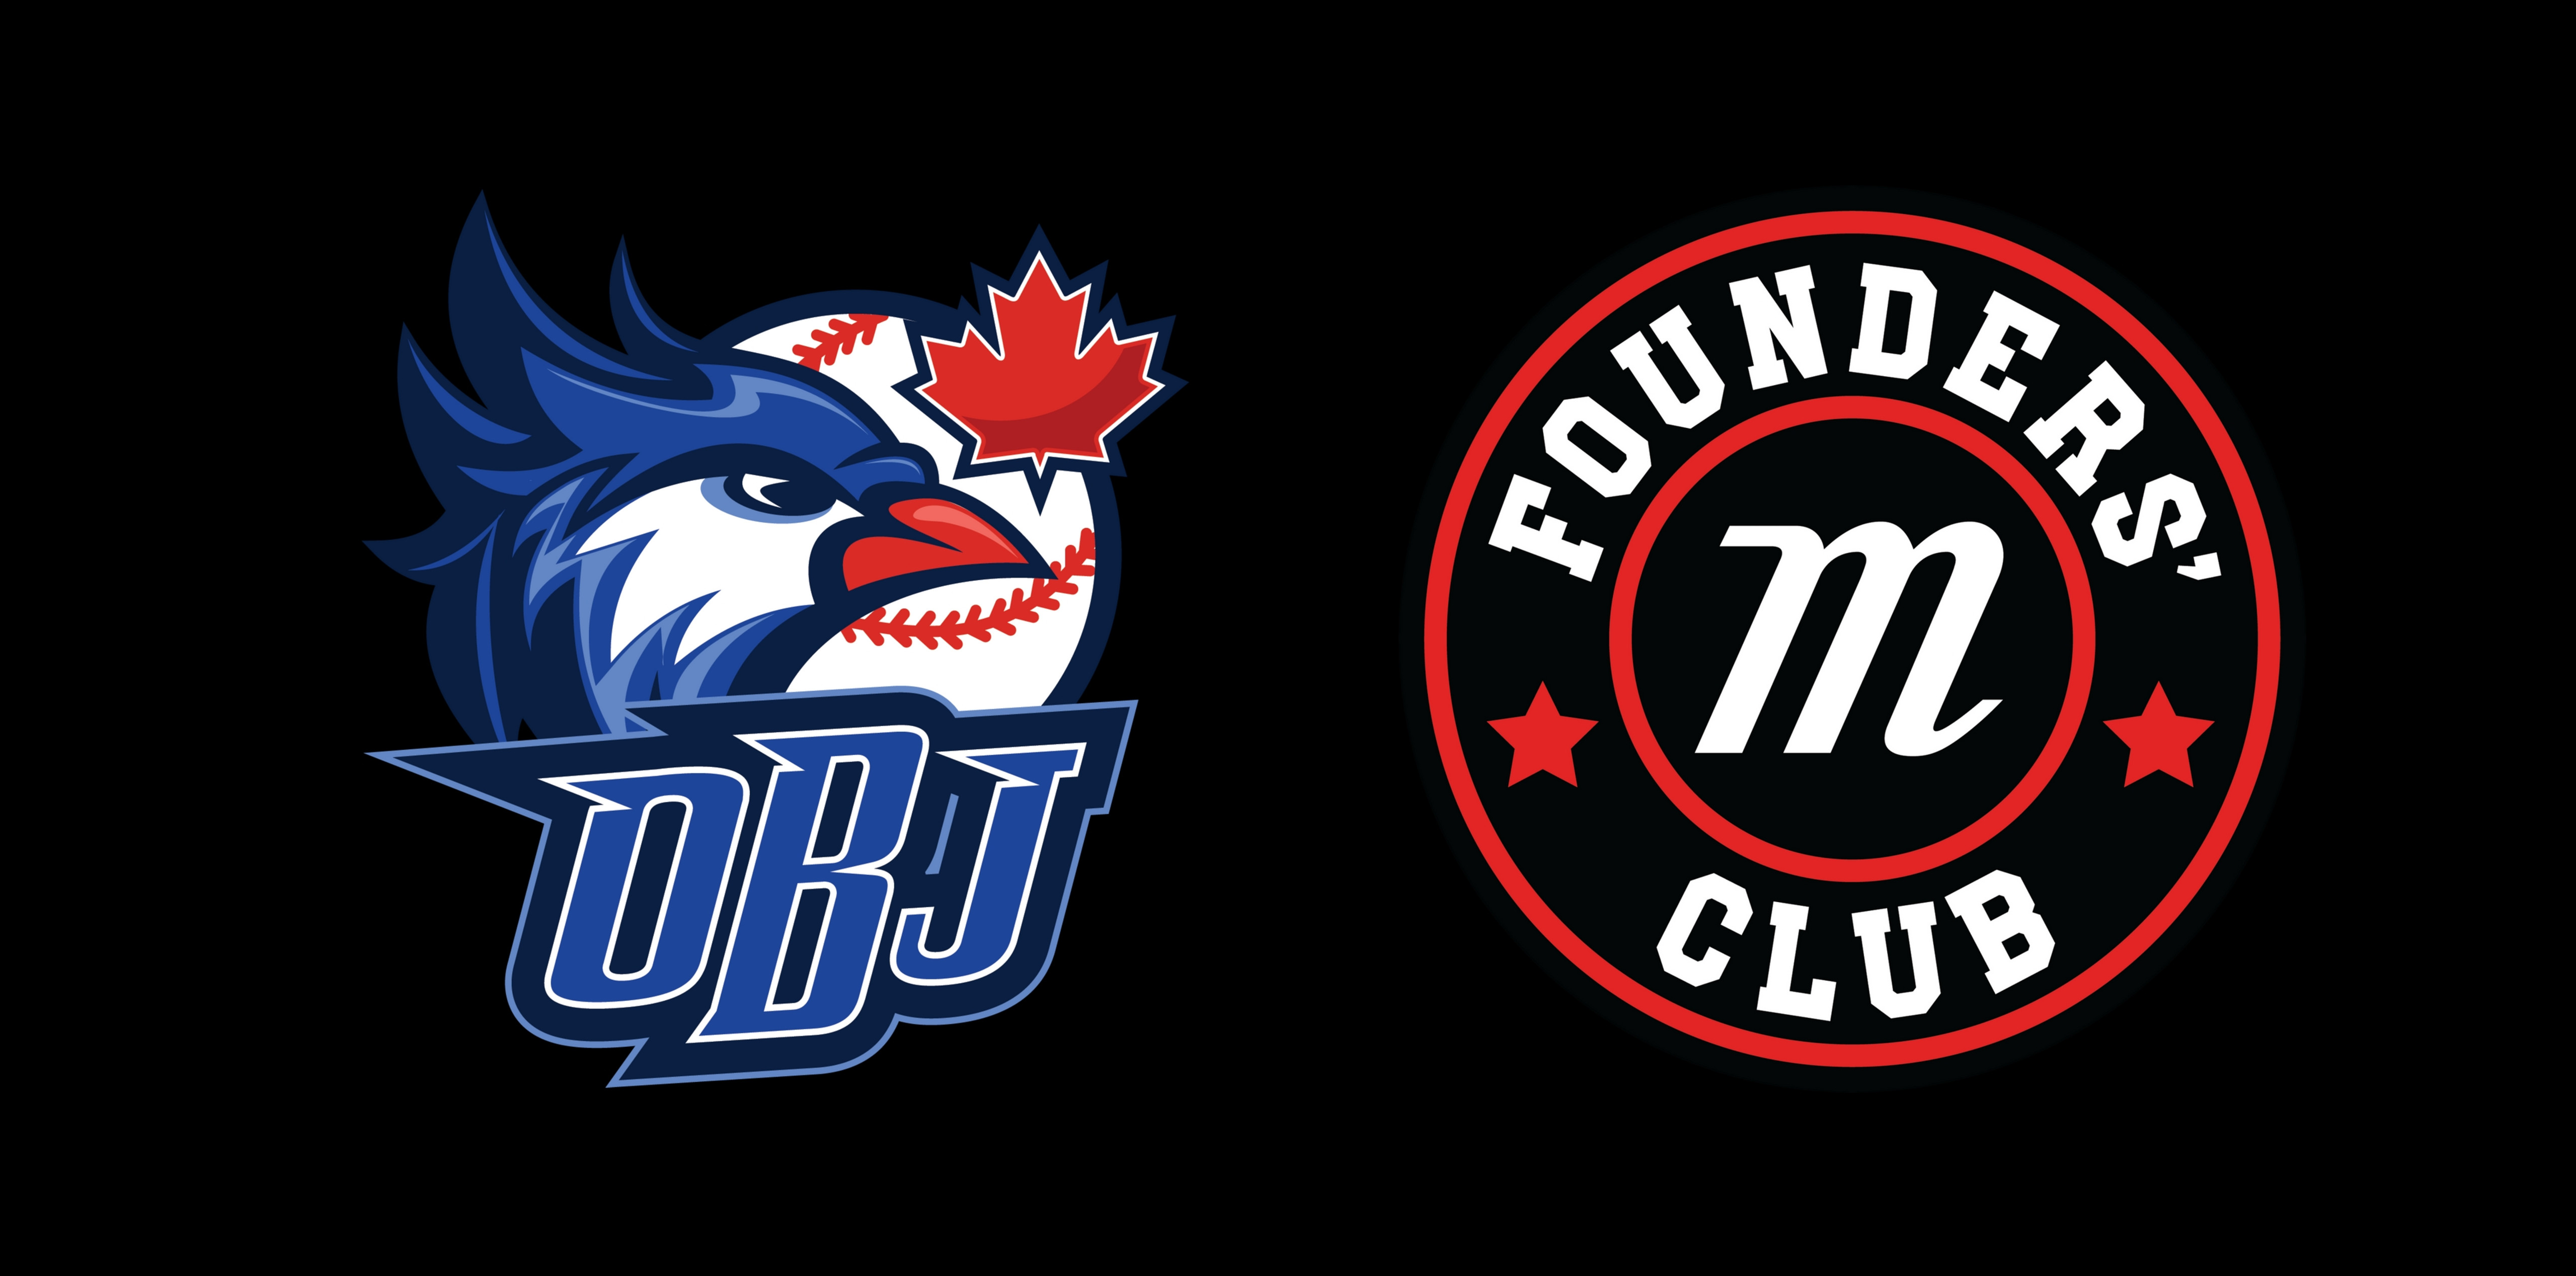 Founders' Club adds Ontario Blue Jays